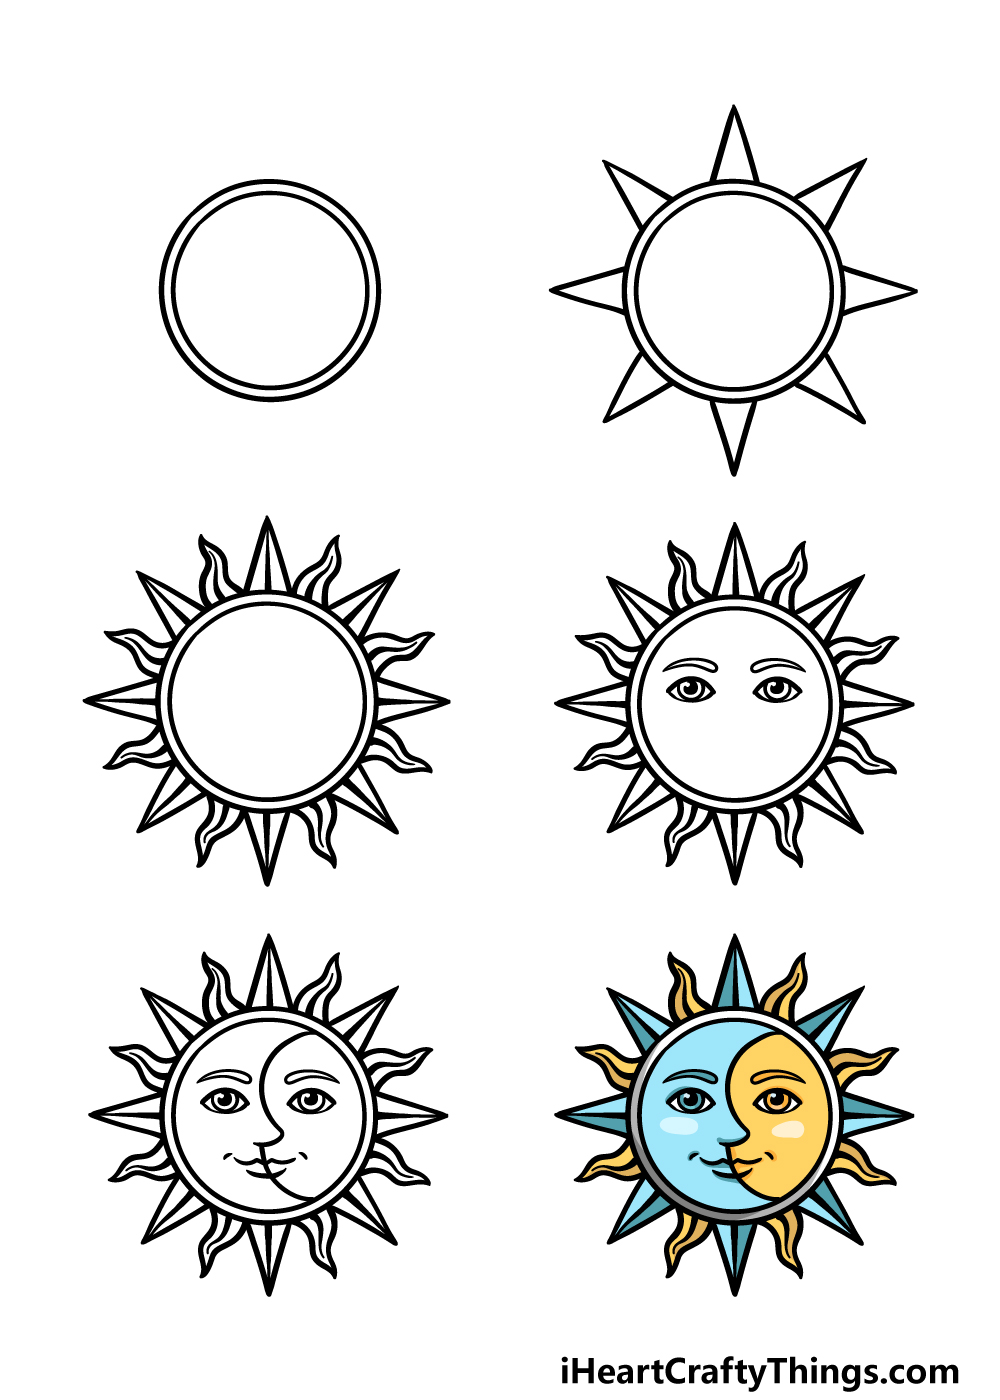 how to draw sun and moon in 6 steps